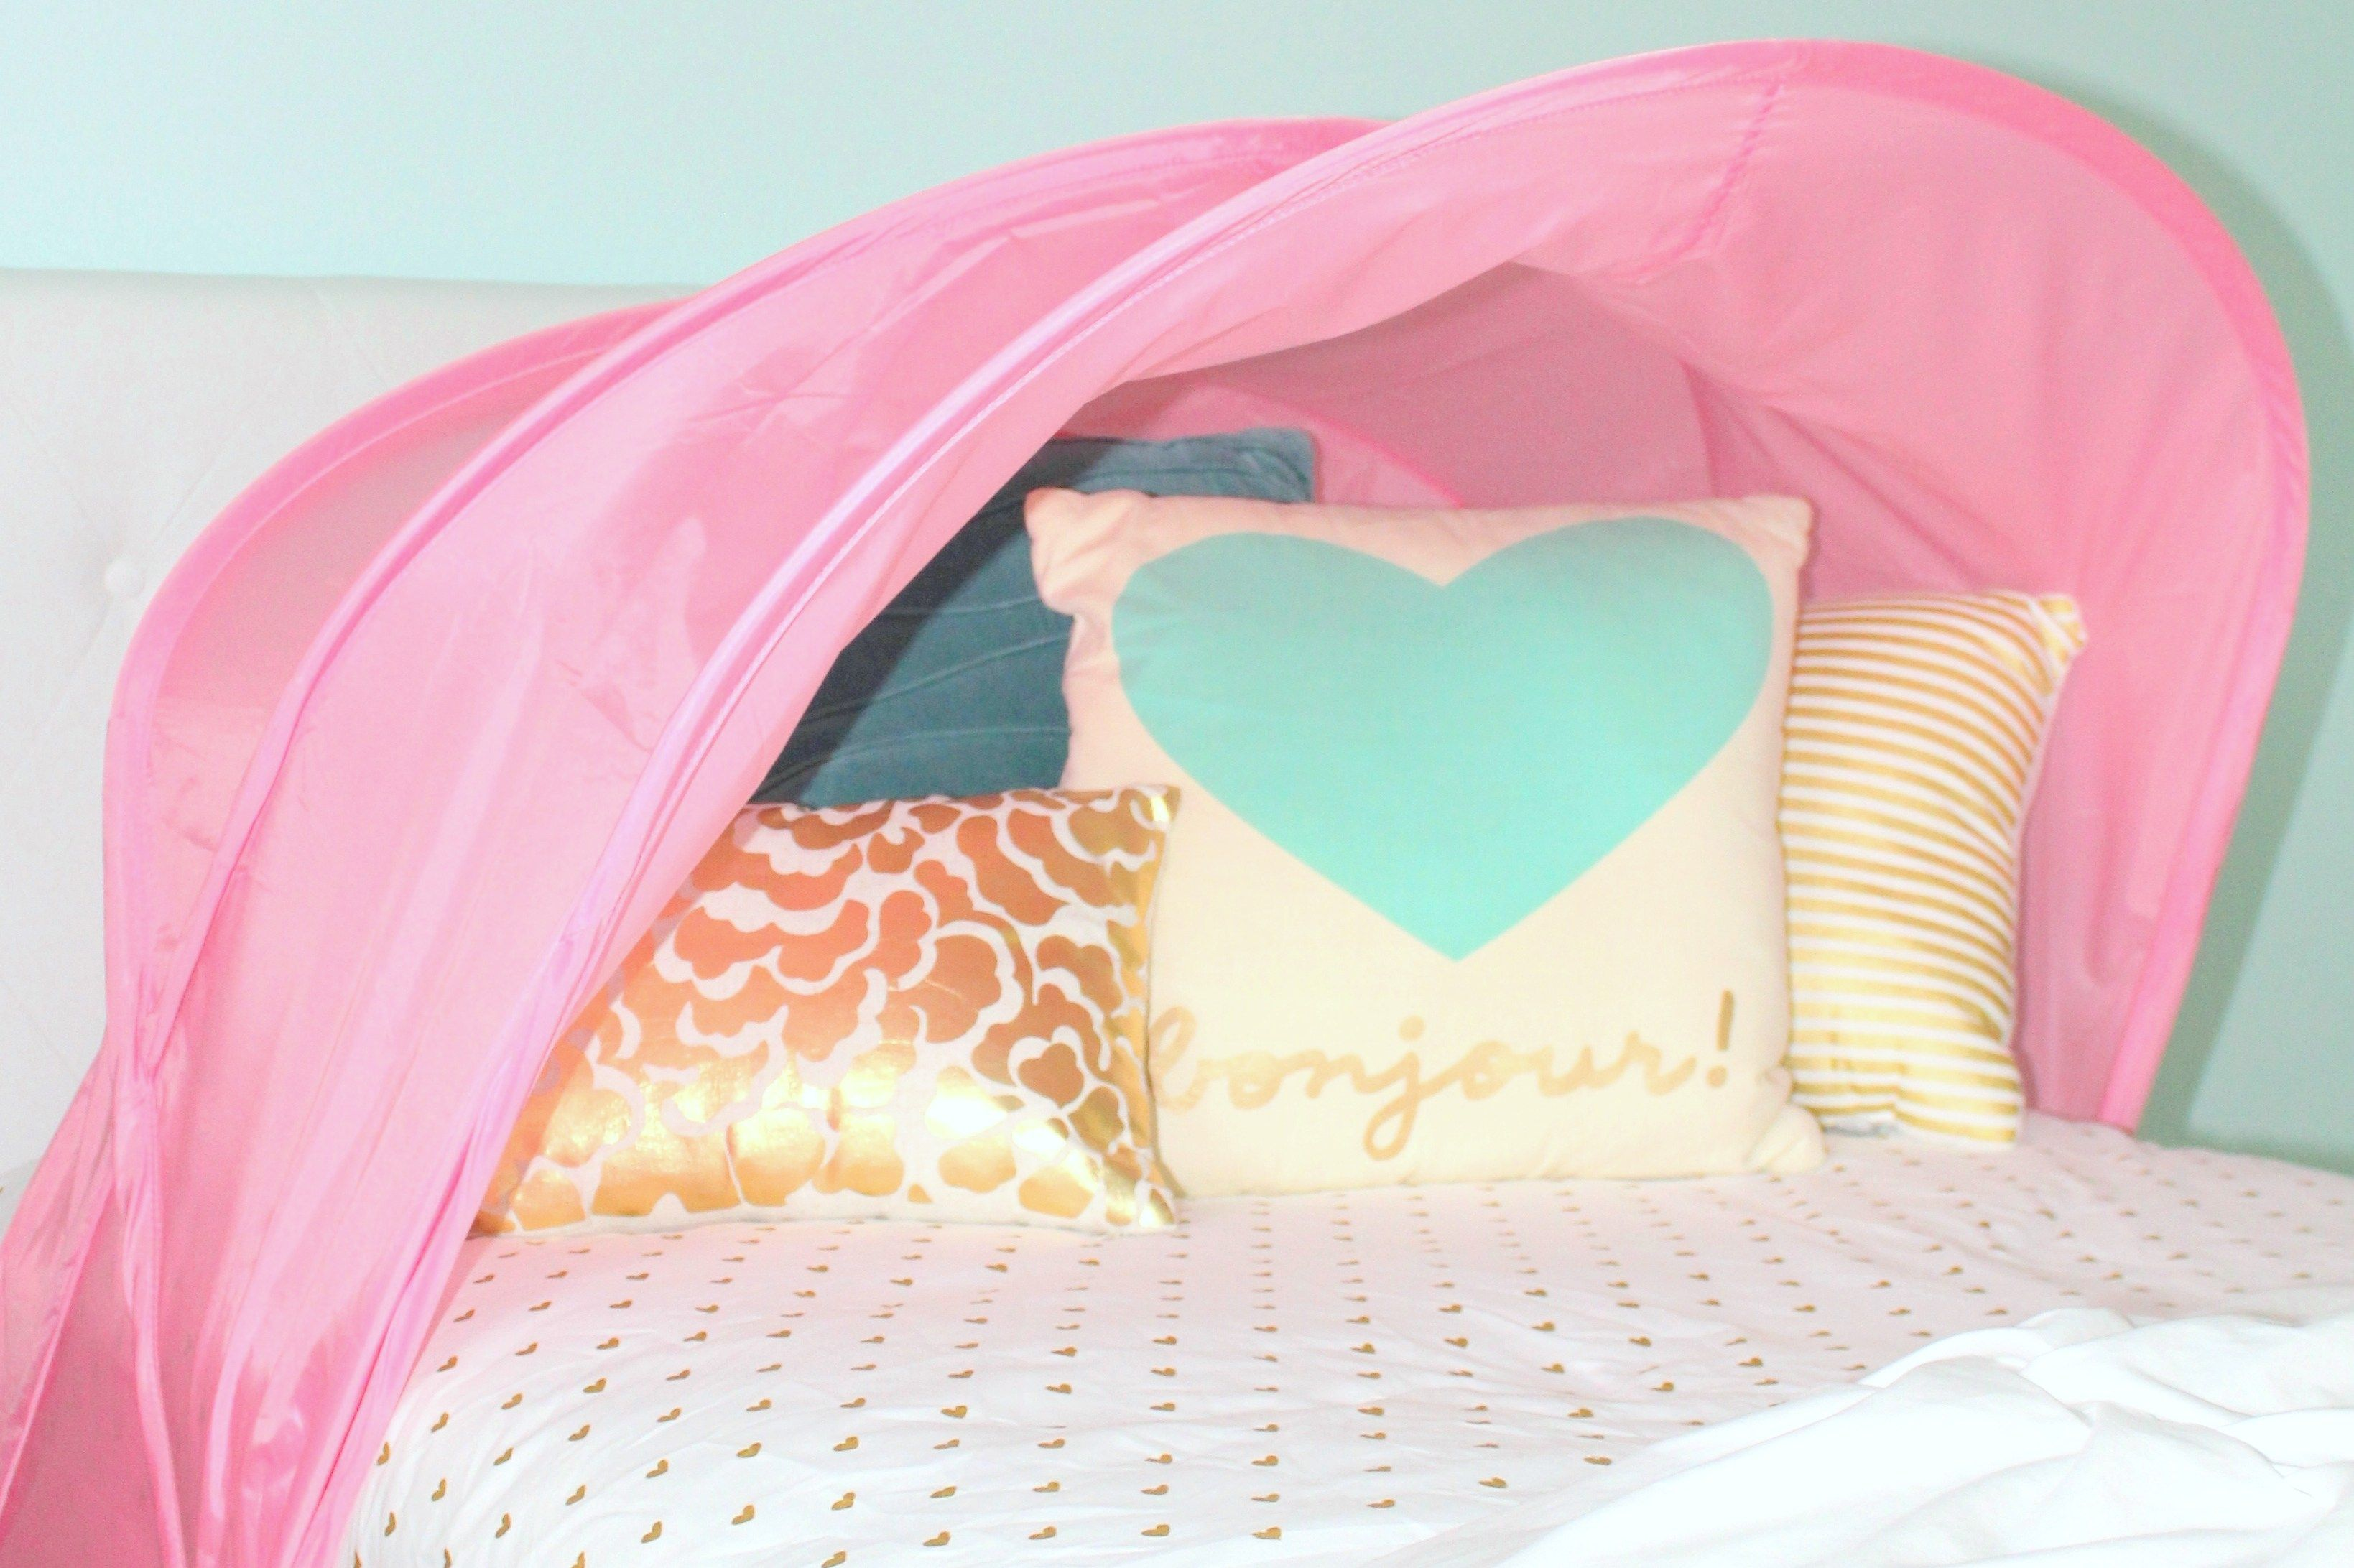 Bettwäsche Mia And Me This Pink Ikea Sufflett Bed Tent Is A Winner For Helping Kids